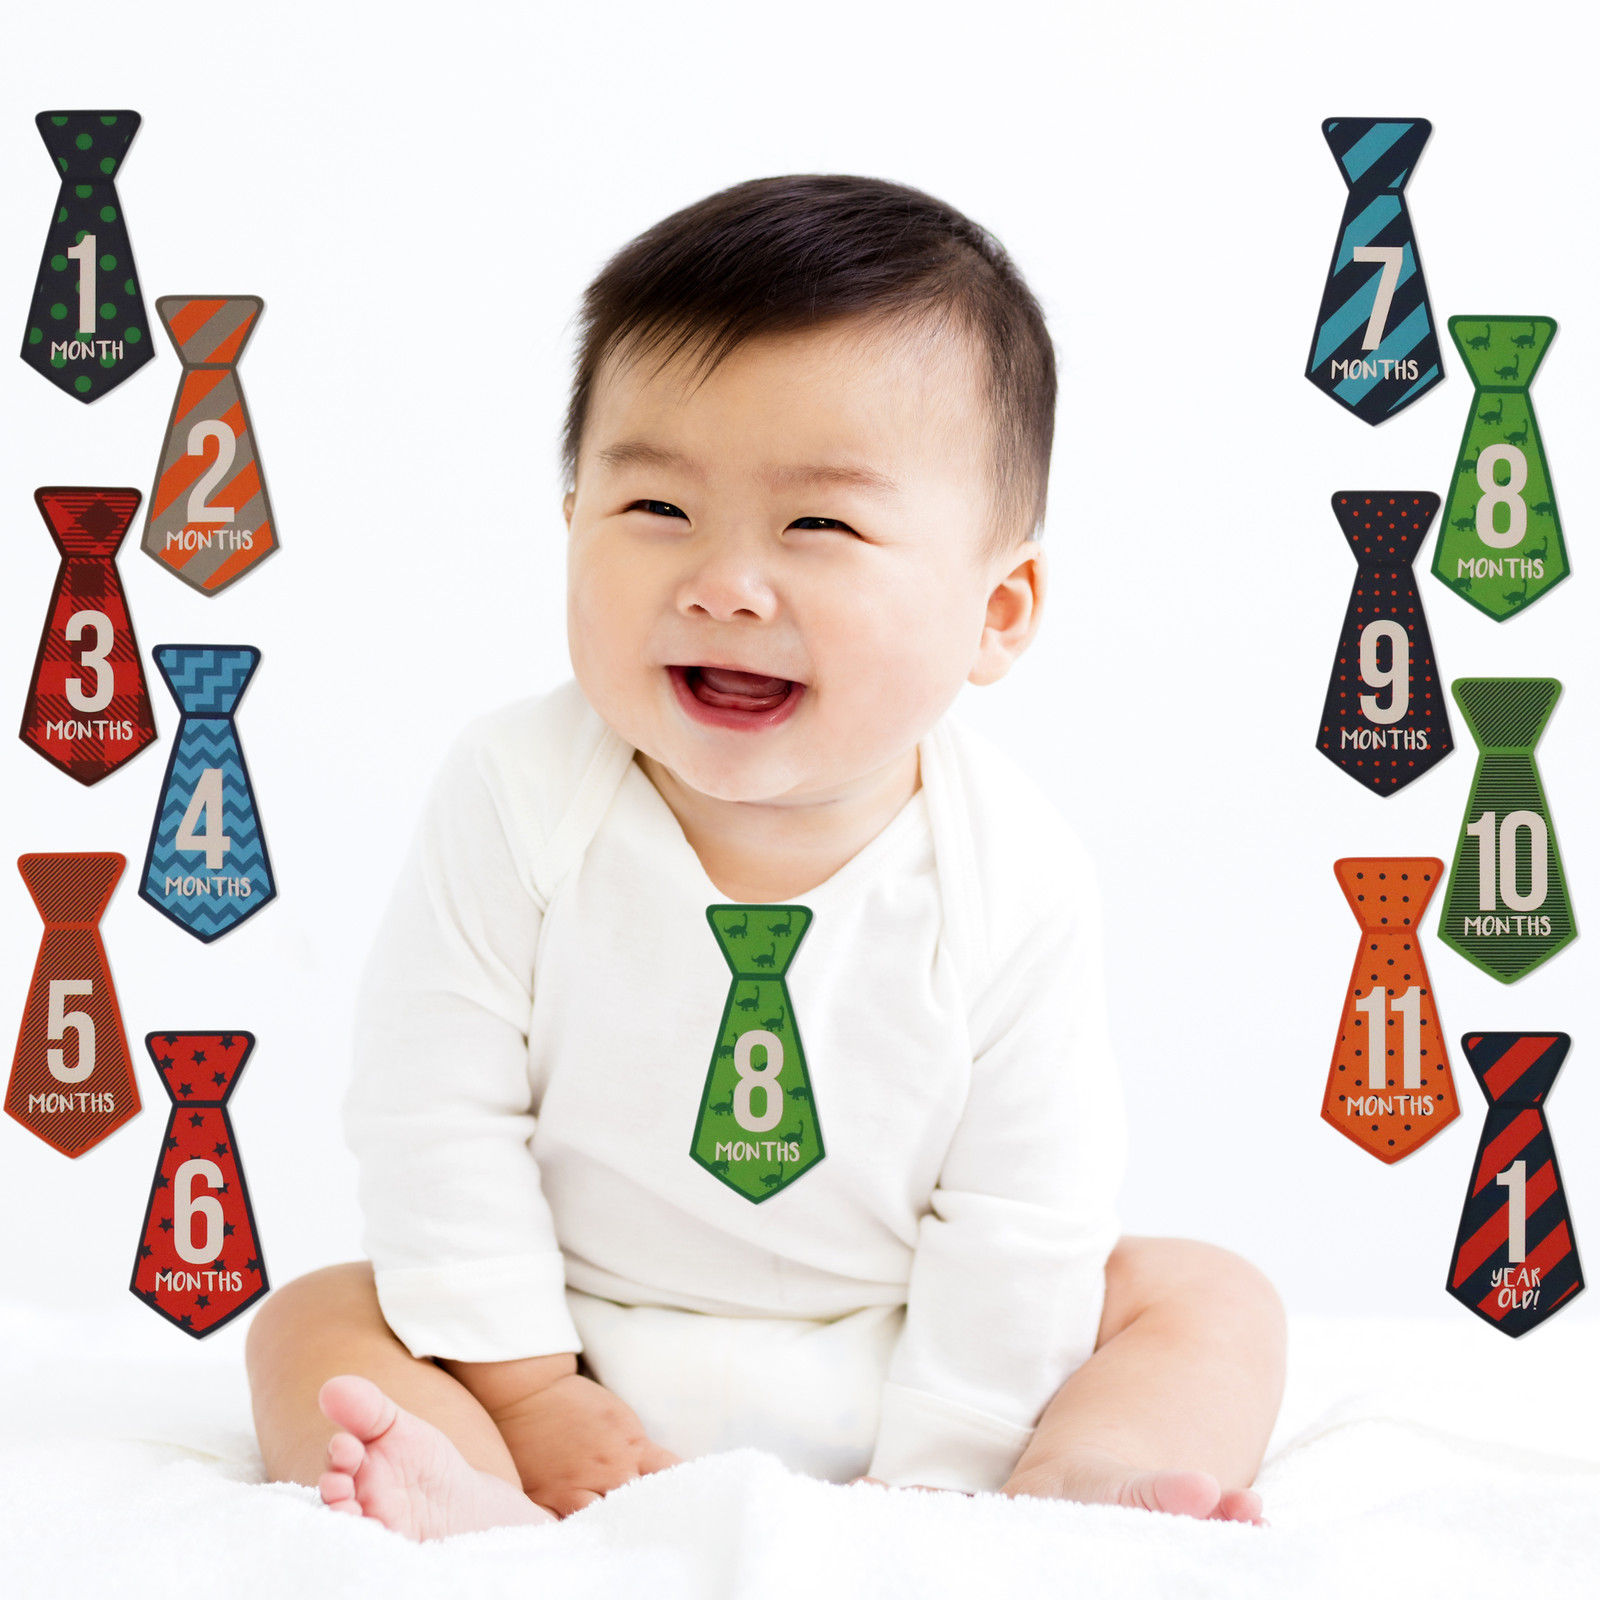 Rising Star Milestone Photo Prop Belly Stickers Gift Set, Baby Boys, Age 0-12